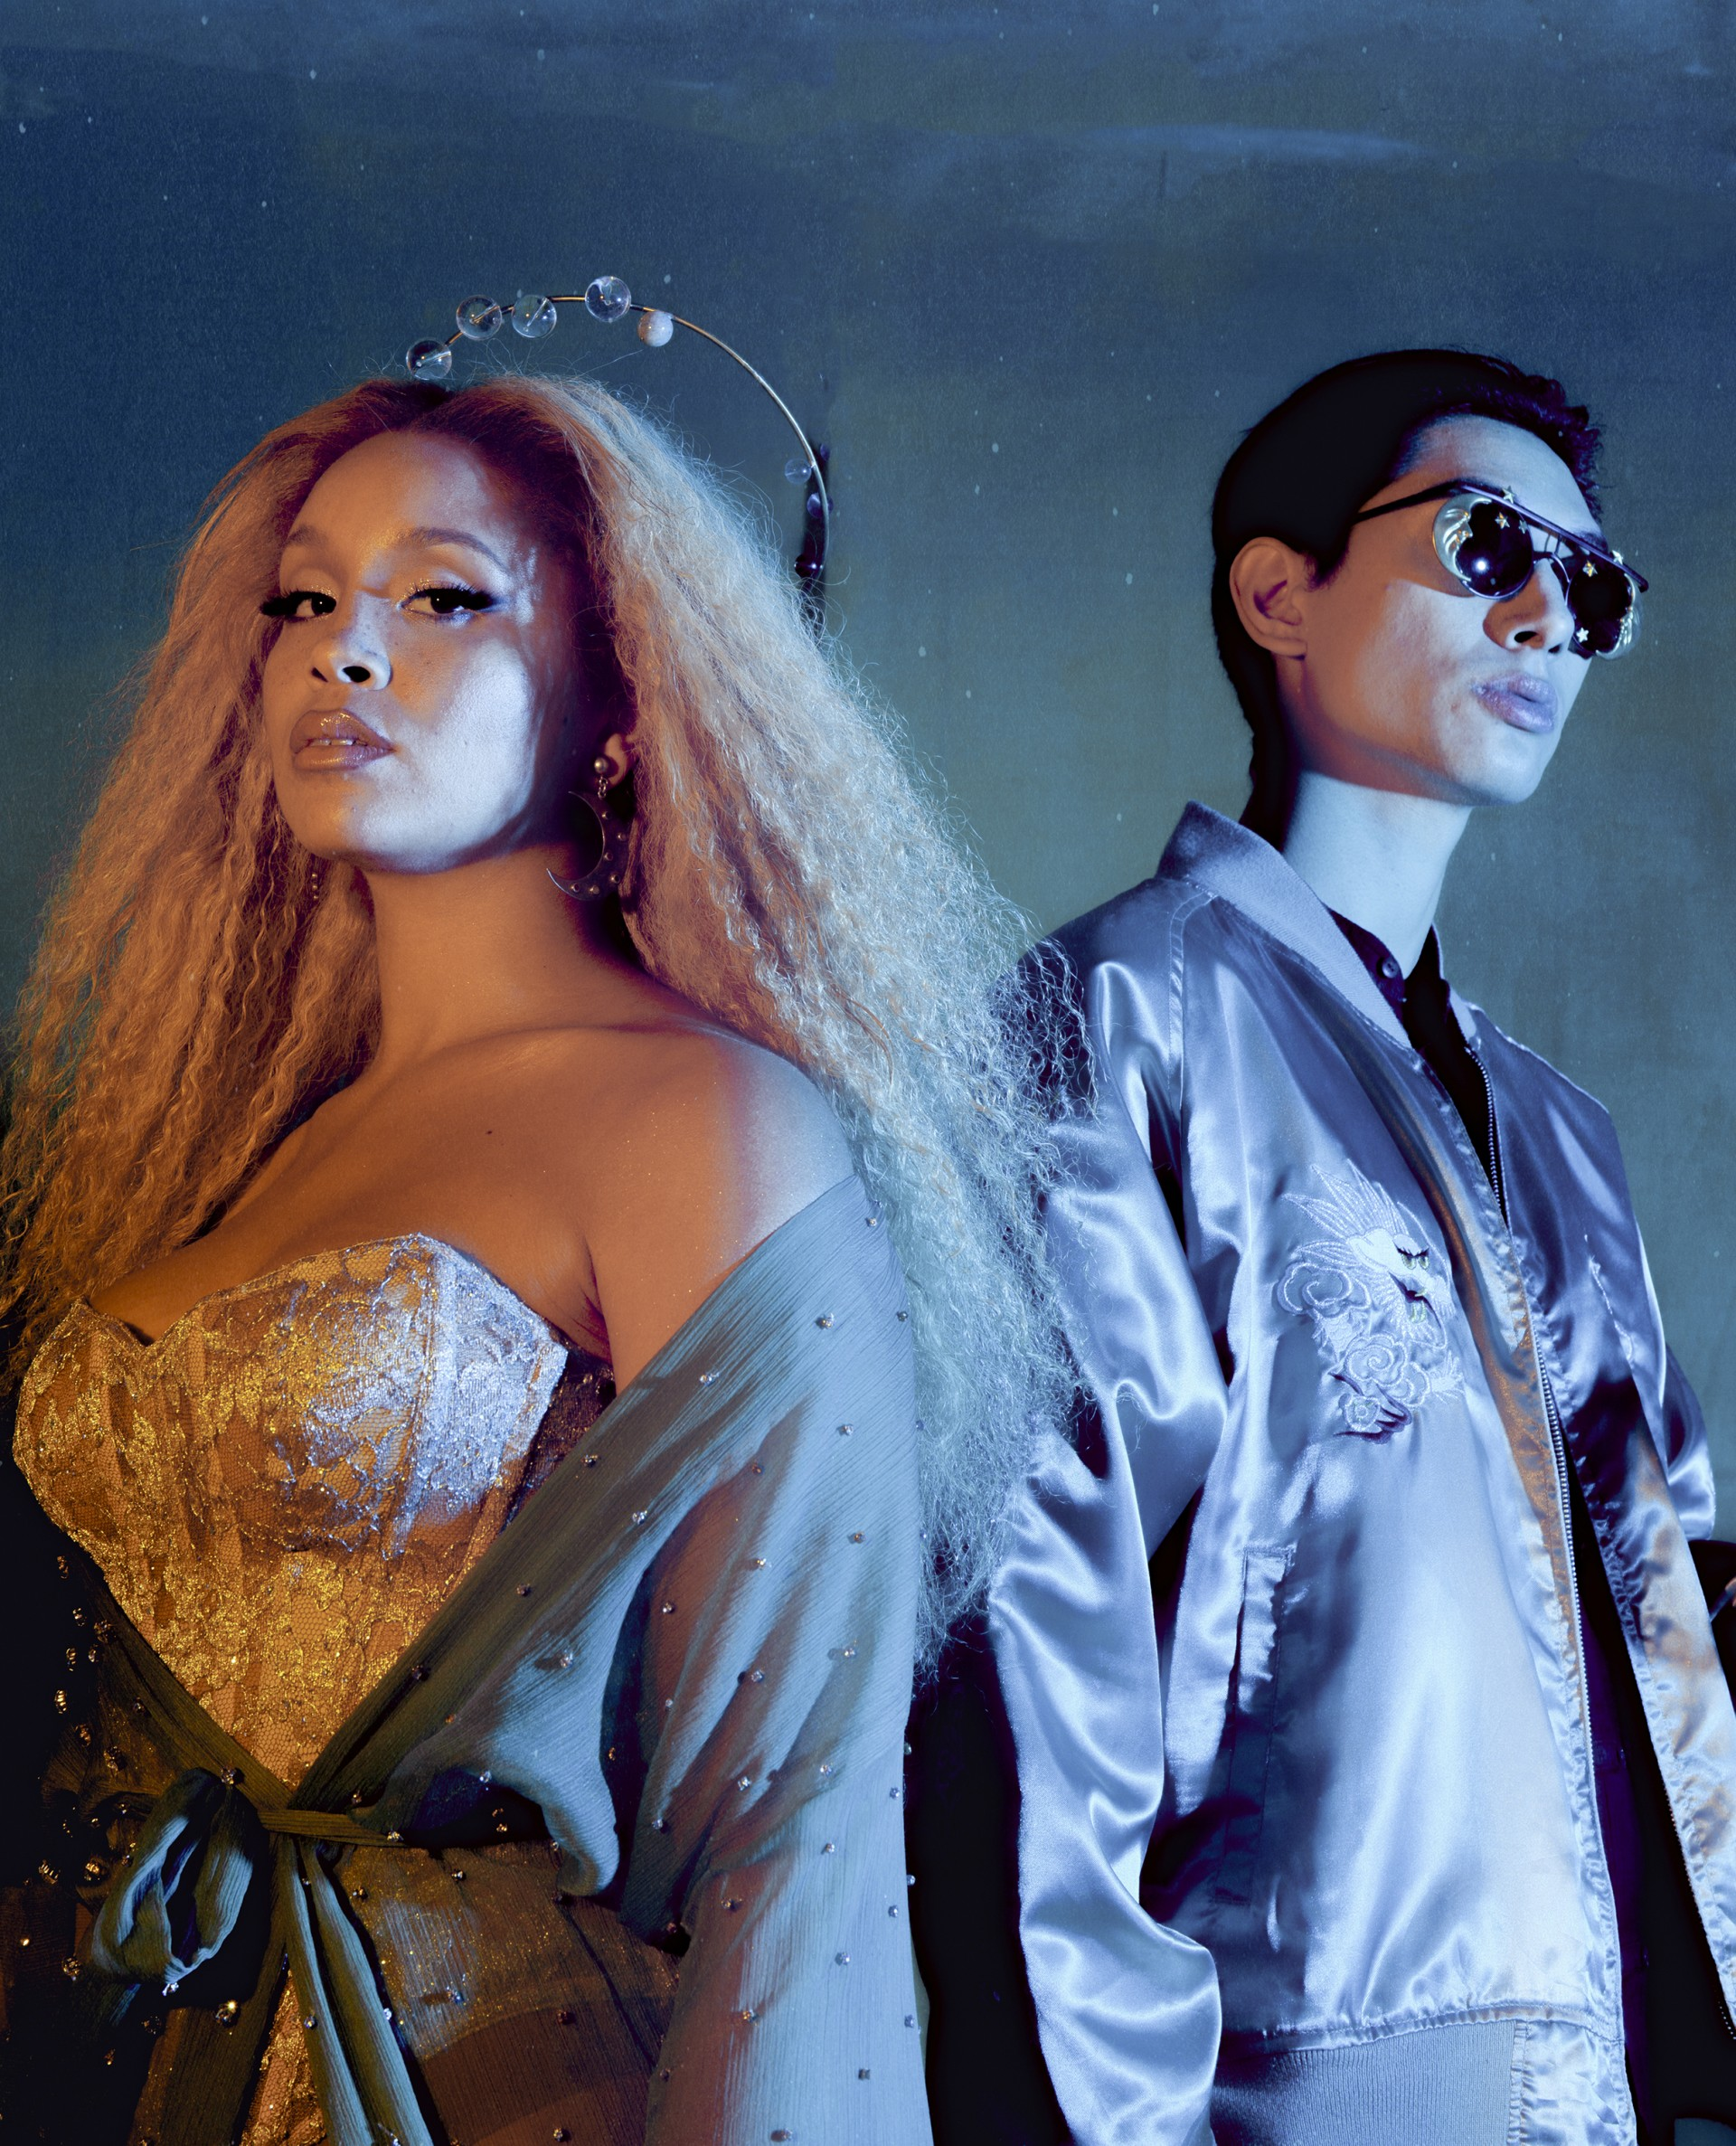 lion-babe-the-soulful-duo-serving-up-feel-good-vibes-3.jpg